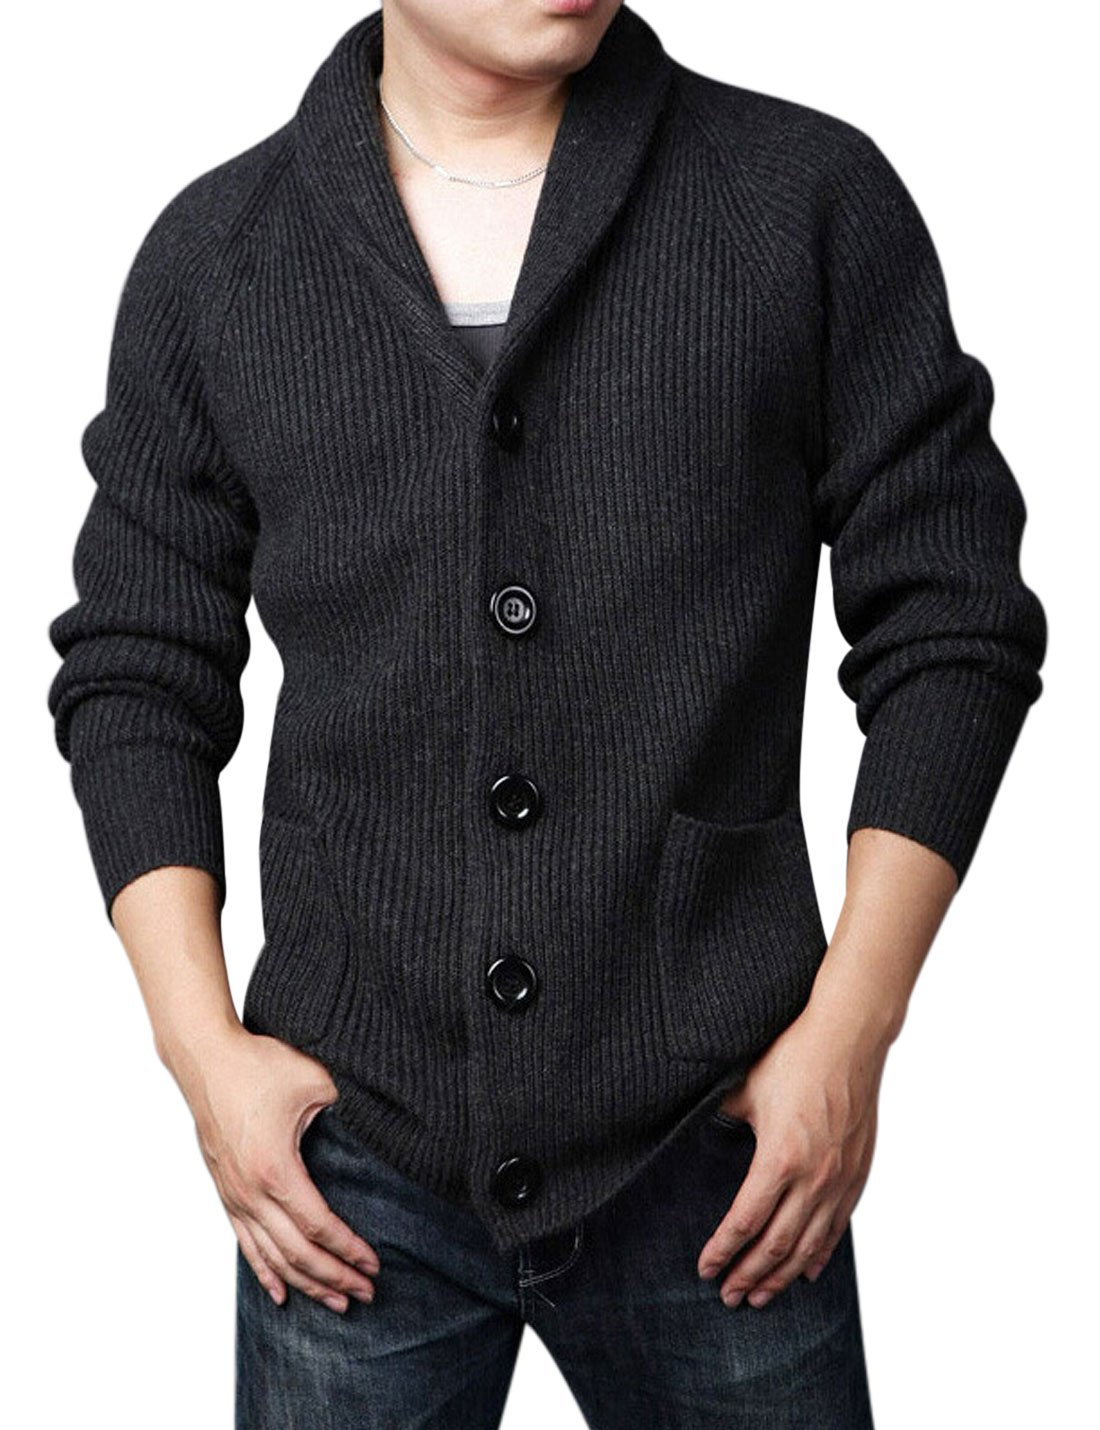 Yeokou Men's Casual Slim Thick Knitted Shawl Collar Cardigan Sweaters Pockets (X-Large, Black)